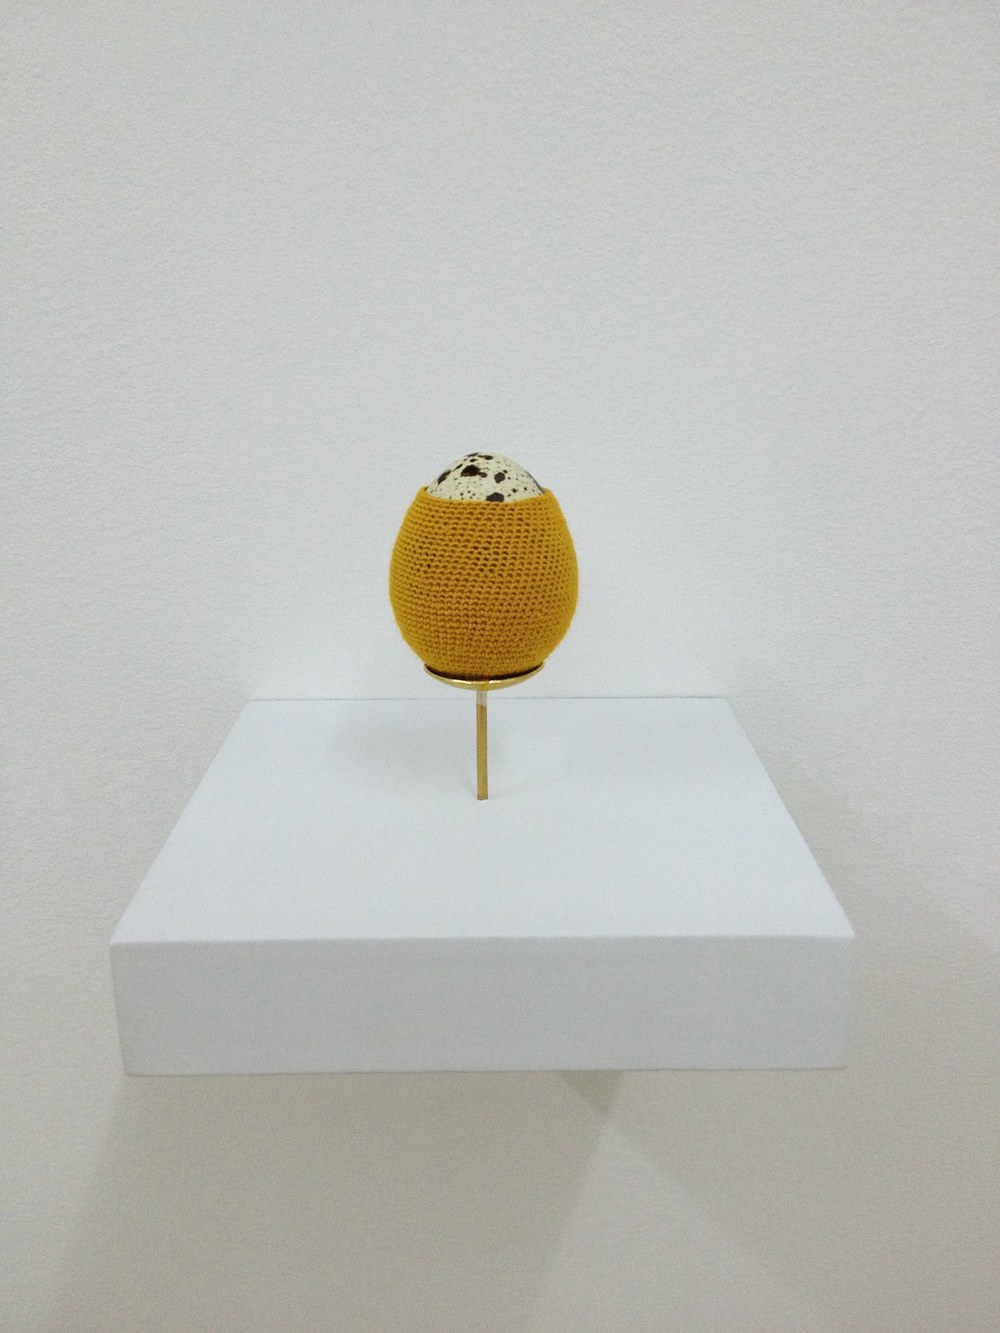 Esther Traugot Egg series 2, detail, 2014 three coturnix quail egg shells, dyed cotton thread, brass mounts, wood shelves each egg on shelf: 3.5 x 3 x 3 inches